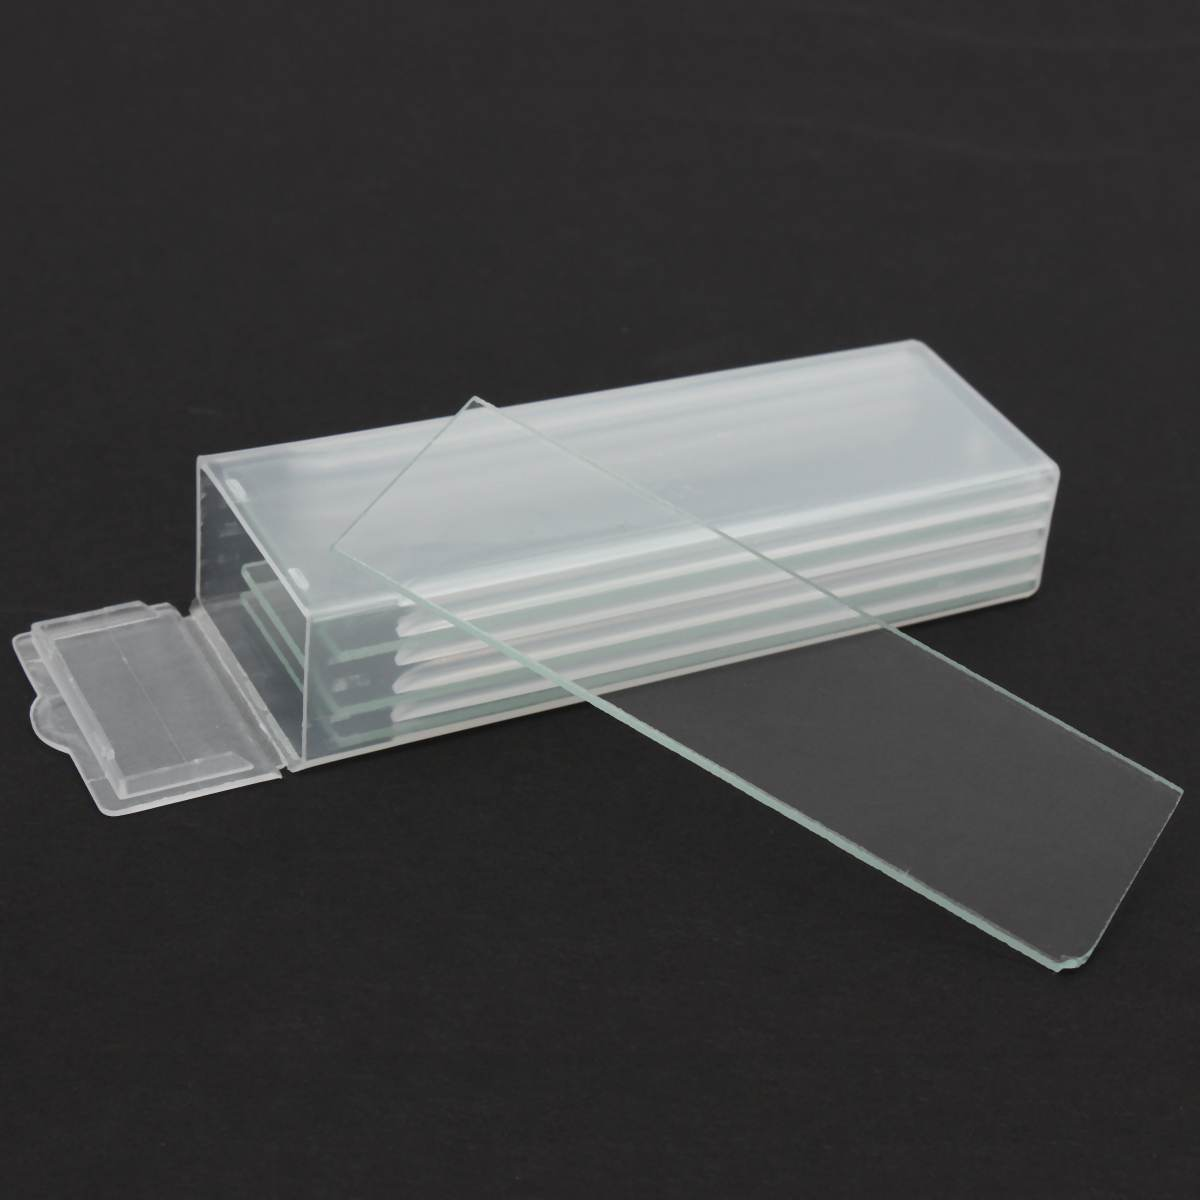 5Pcs  1mm Thickness Cavity Glass Coverslips Single Concave Microscope Glass Slides Reusable  Laboratory Blank Sample Cover Glass